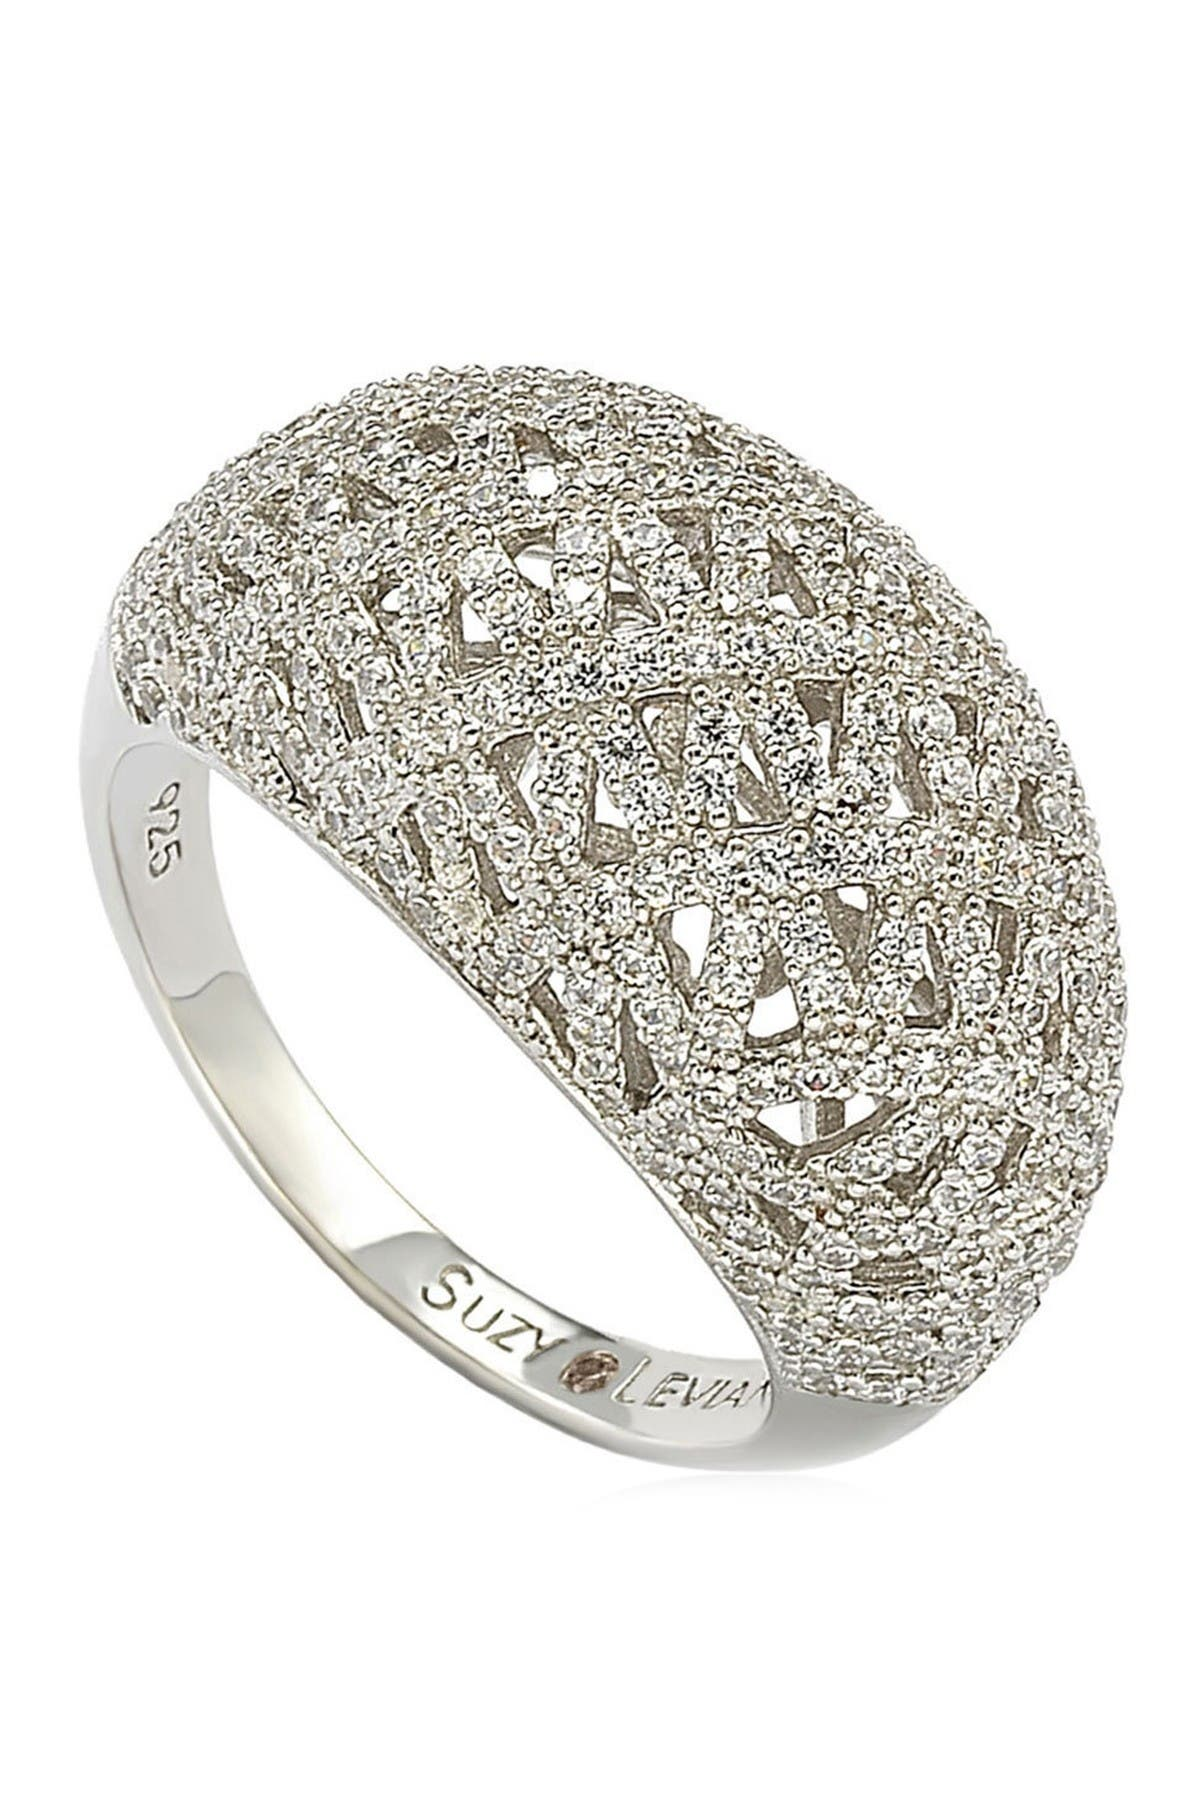 Suzy Levian Sterling Silver Pave Cubic Zirconia Crisscross Ring at Nordstrom Rack